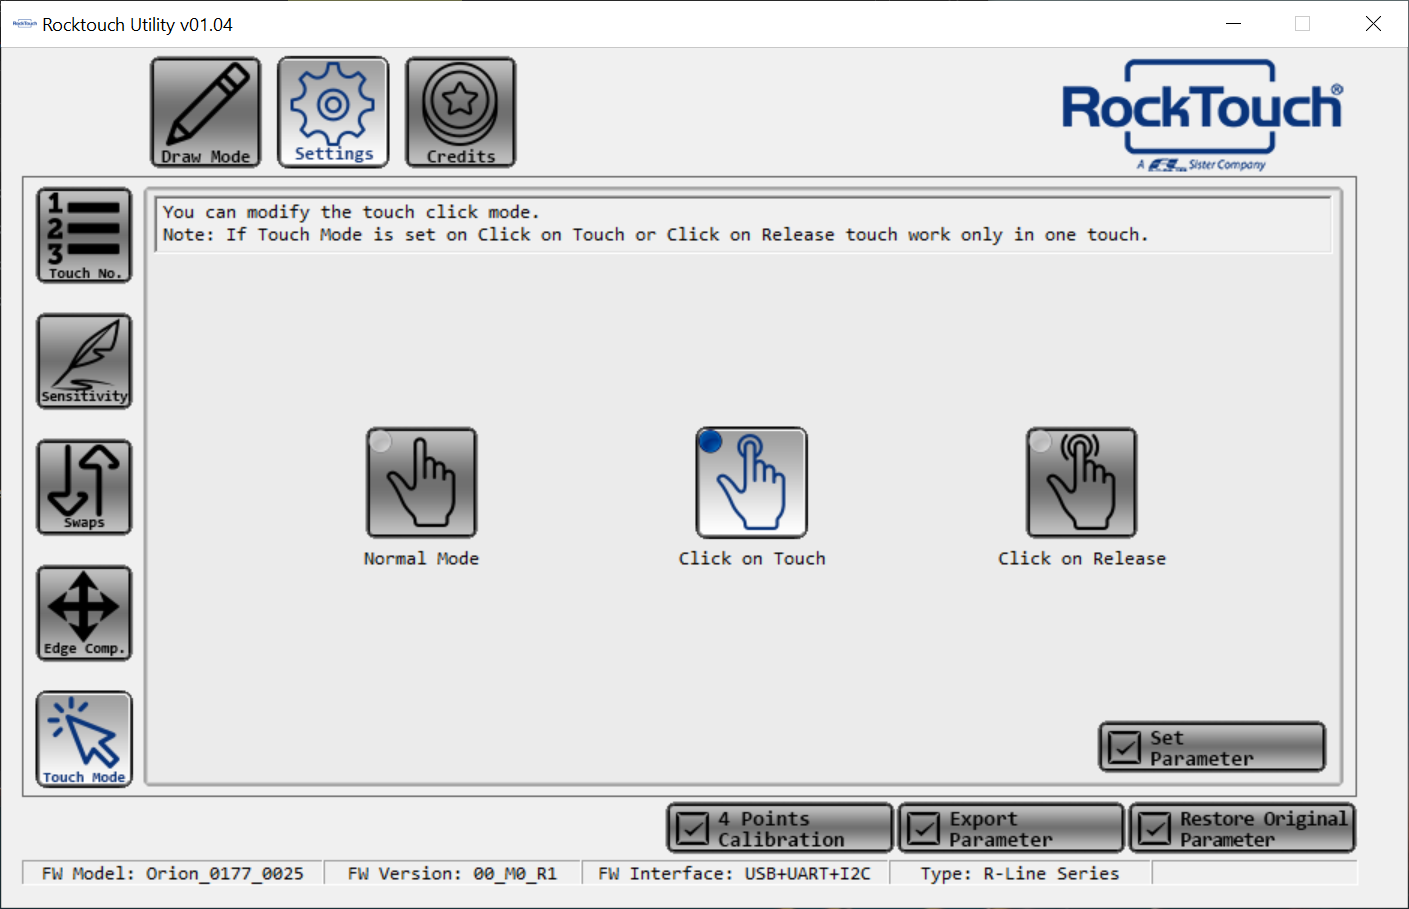 """WYSIWYG - Rocktouch utility ver 01.04 """"Touch Mode."""".png"""